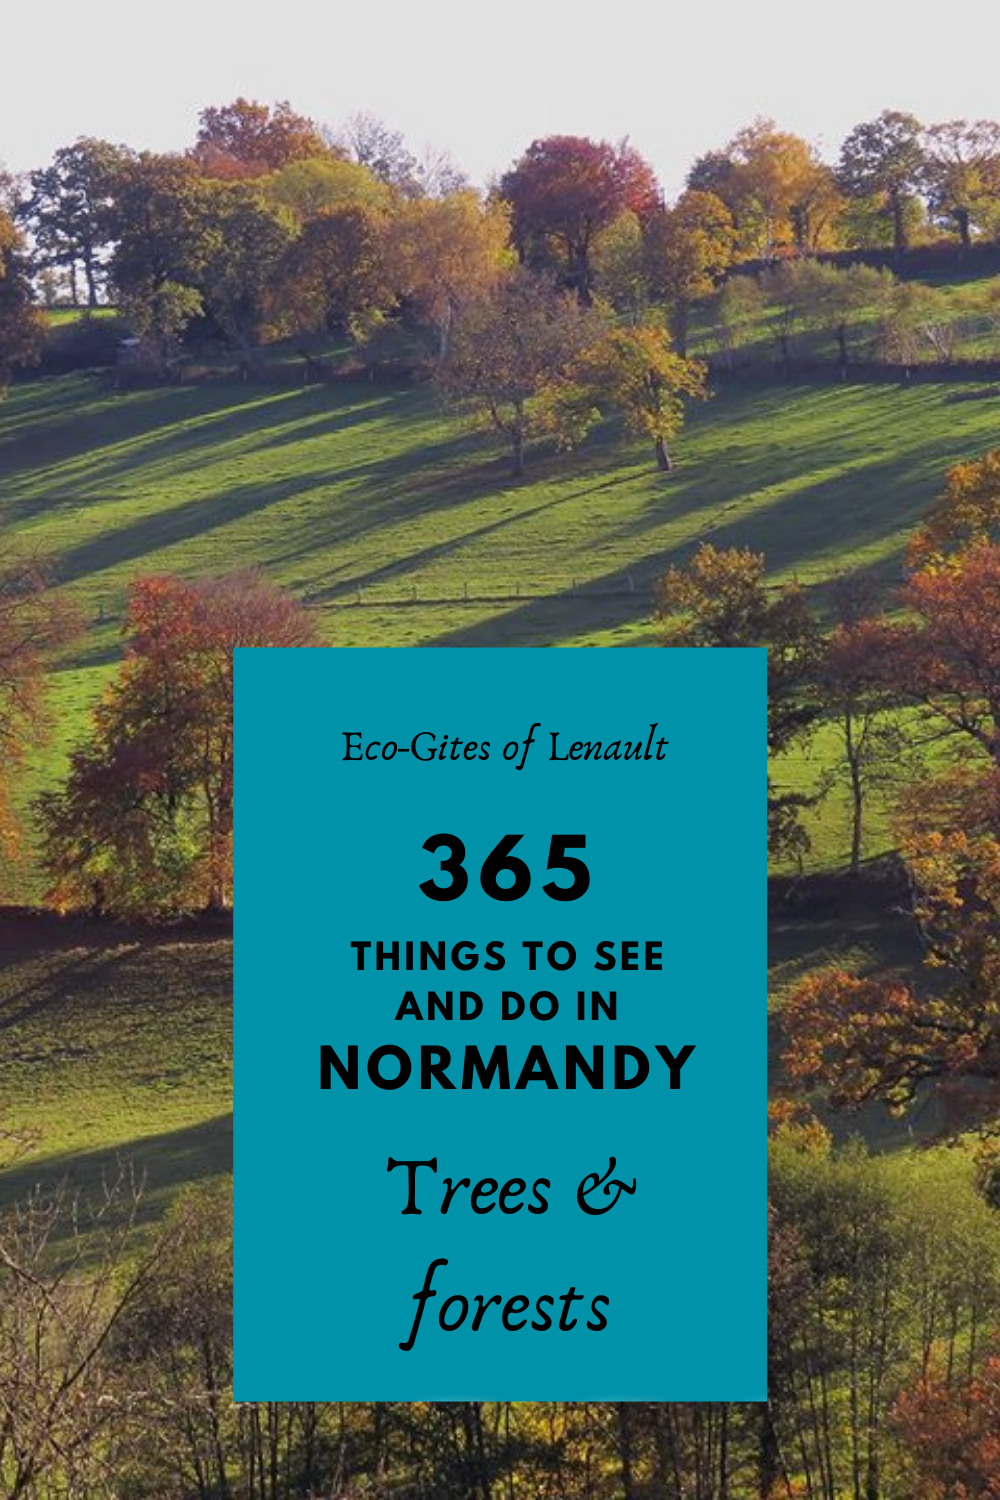 Remarkable trees of Normandy